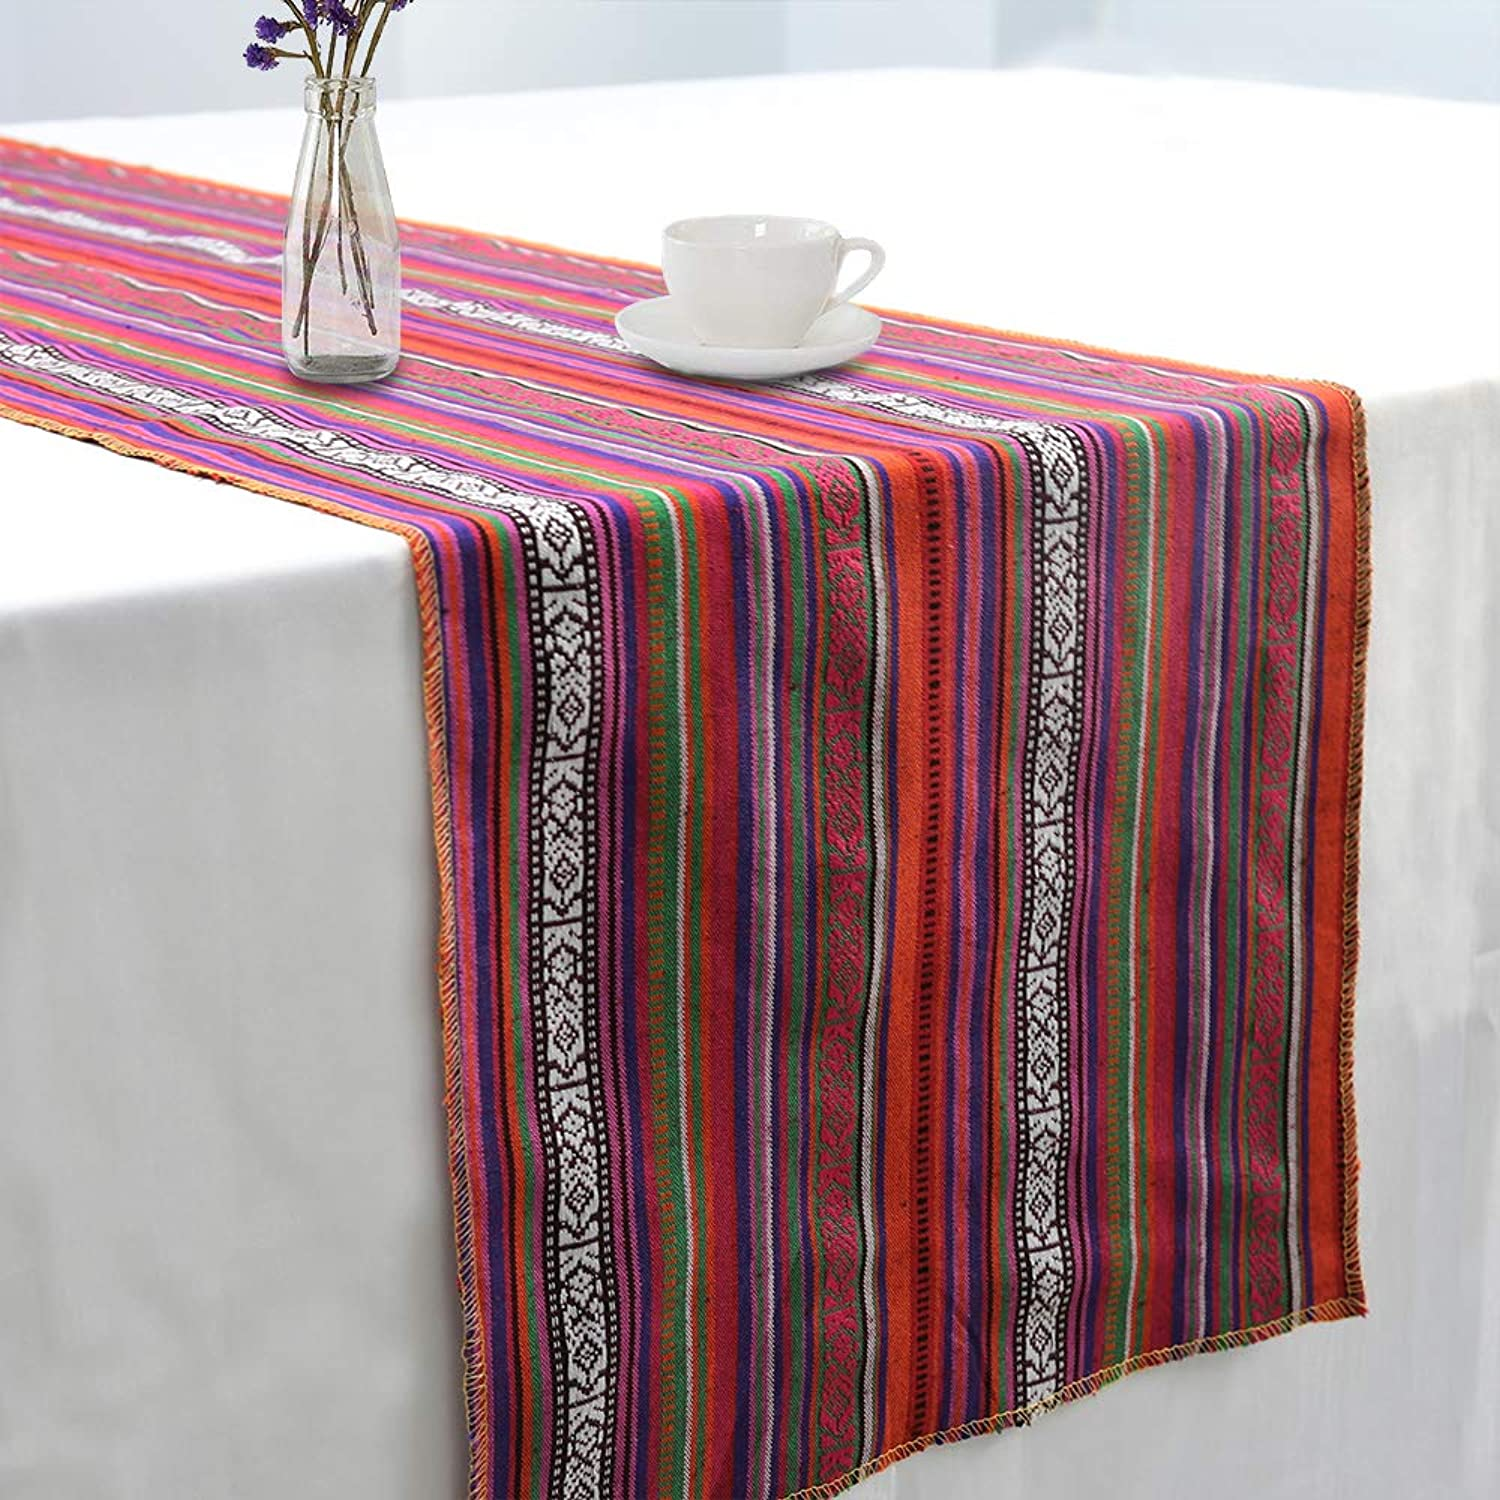 GFCC Pack of 5 Mexican Blanket Table Runner for Mexican Themed Party Decoration - 14x108inch